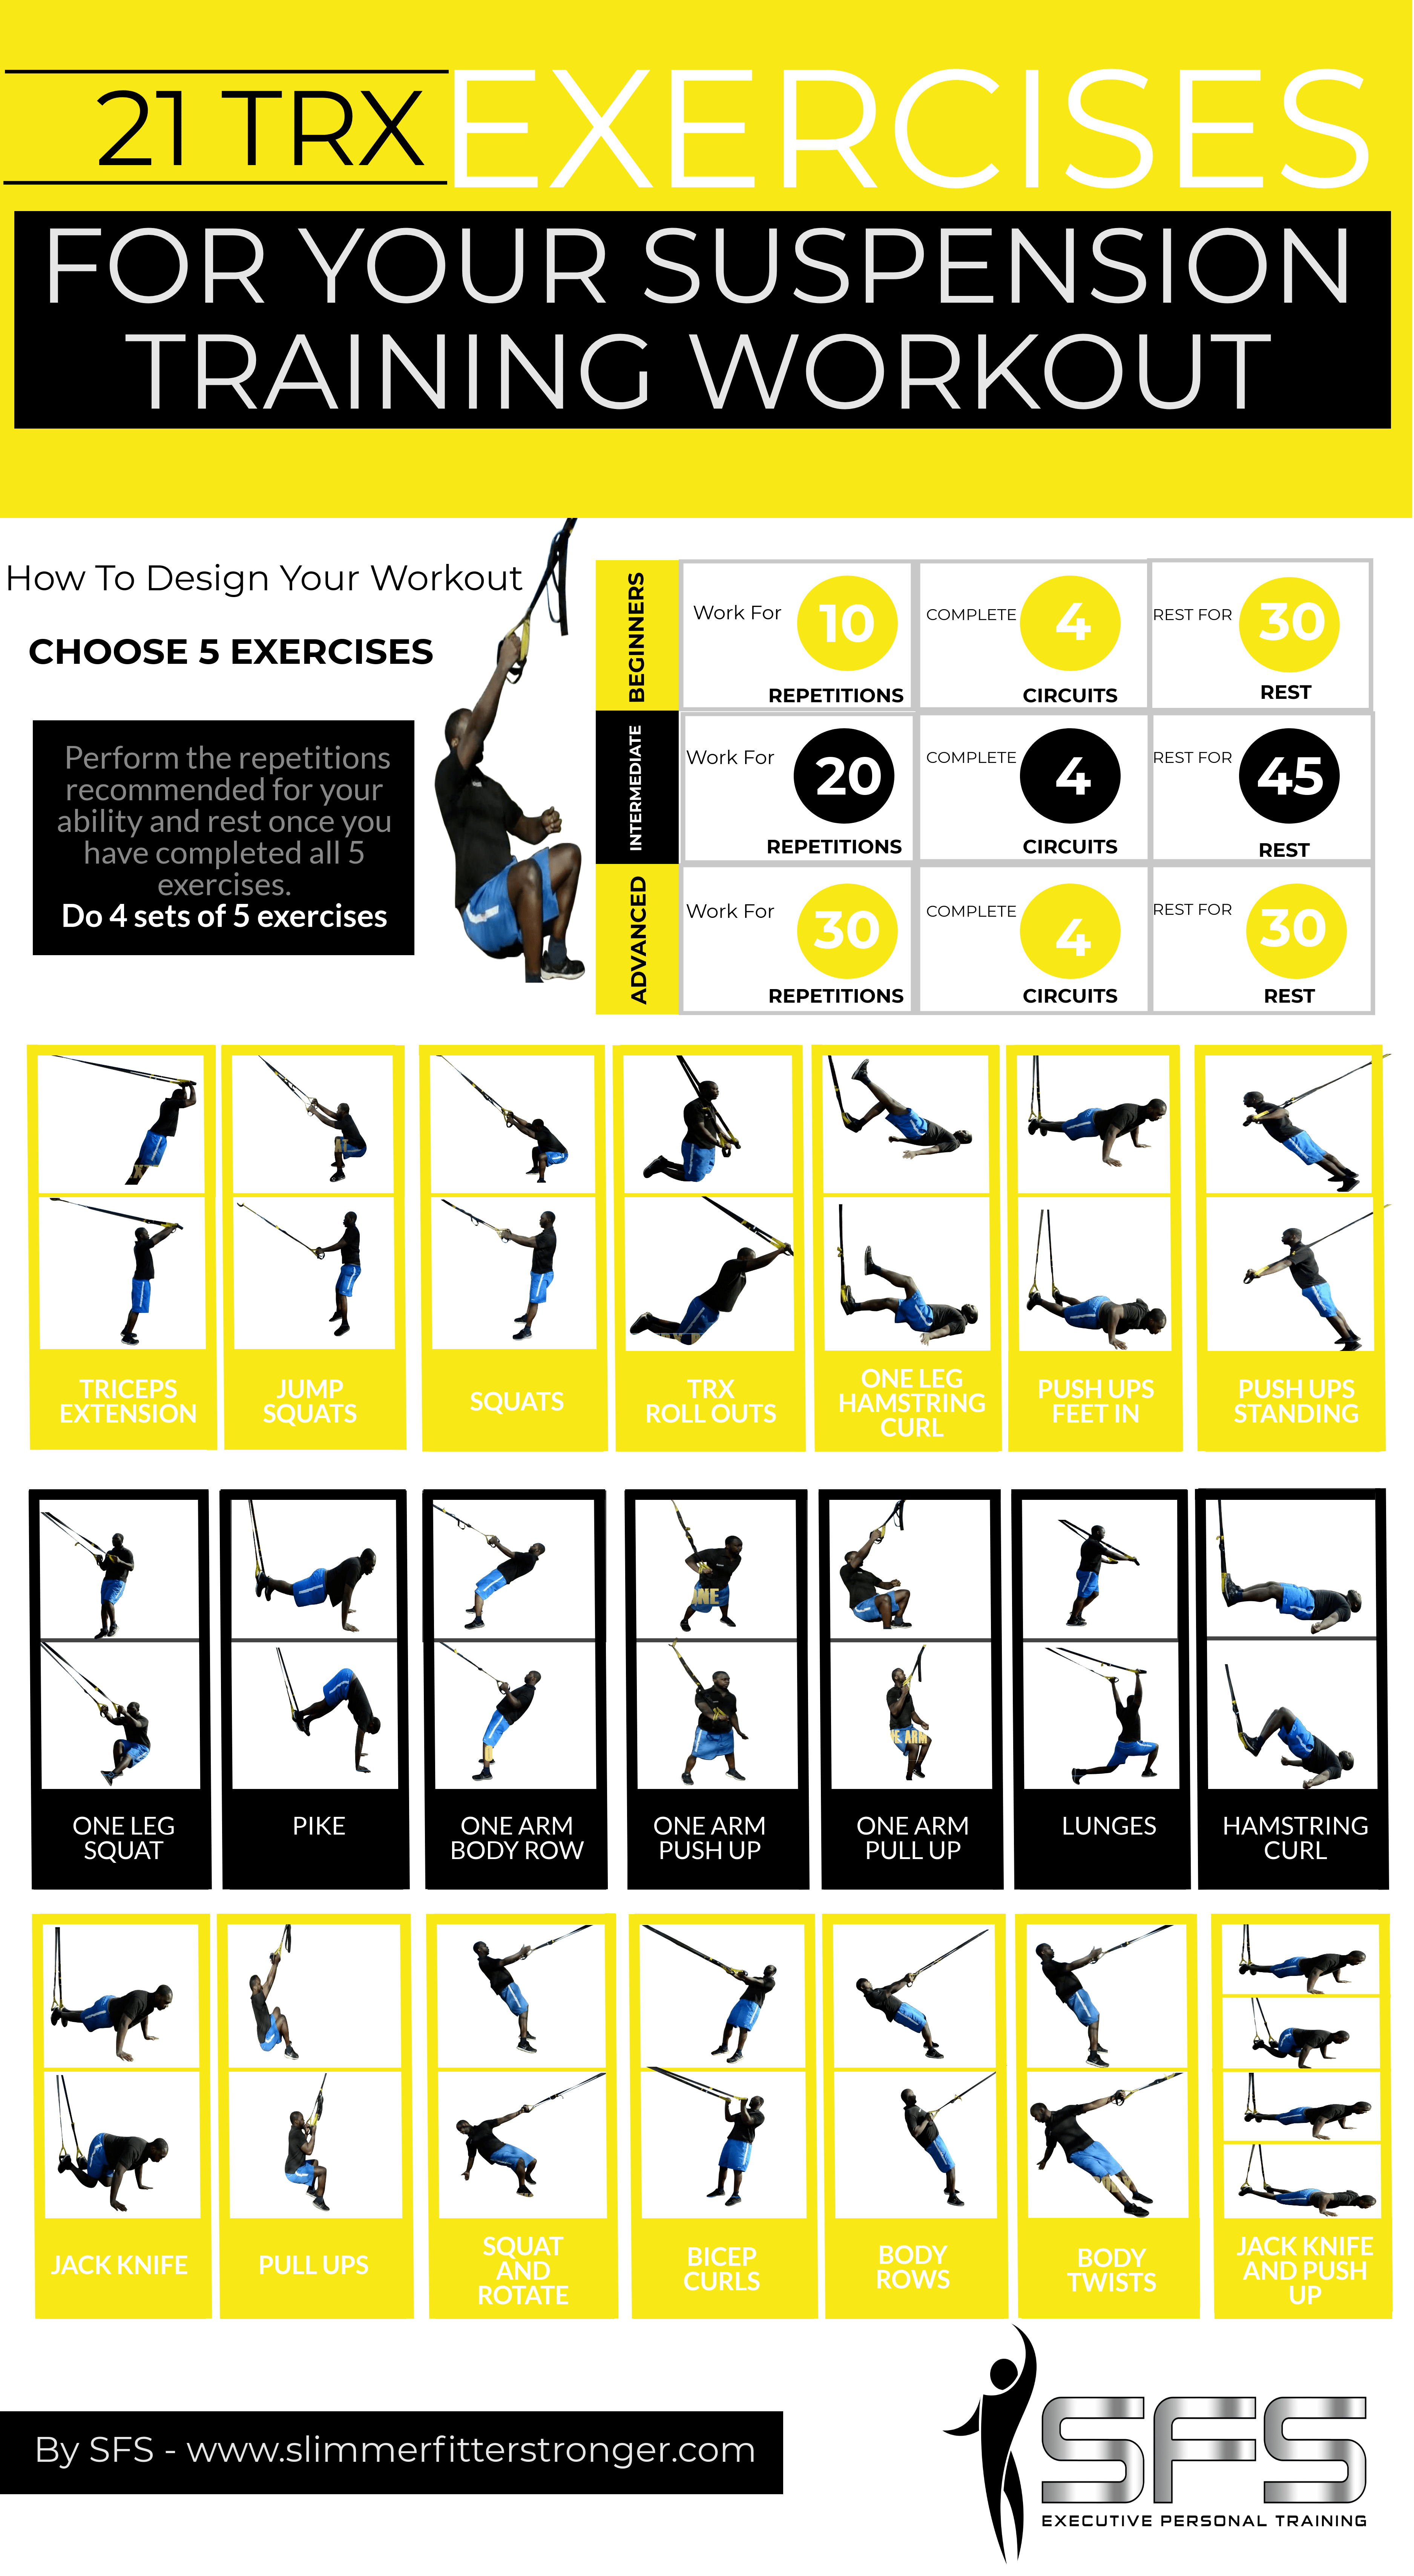 Best Trx Exercises - 21 Suspension Training Exercises | Rad - Free Printable Trx Workouts